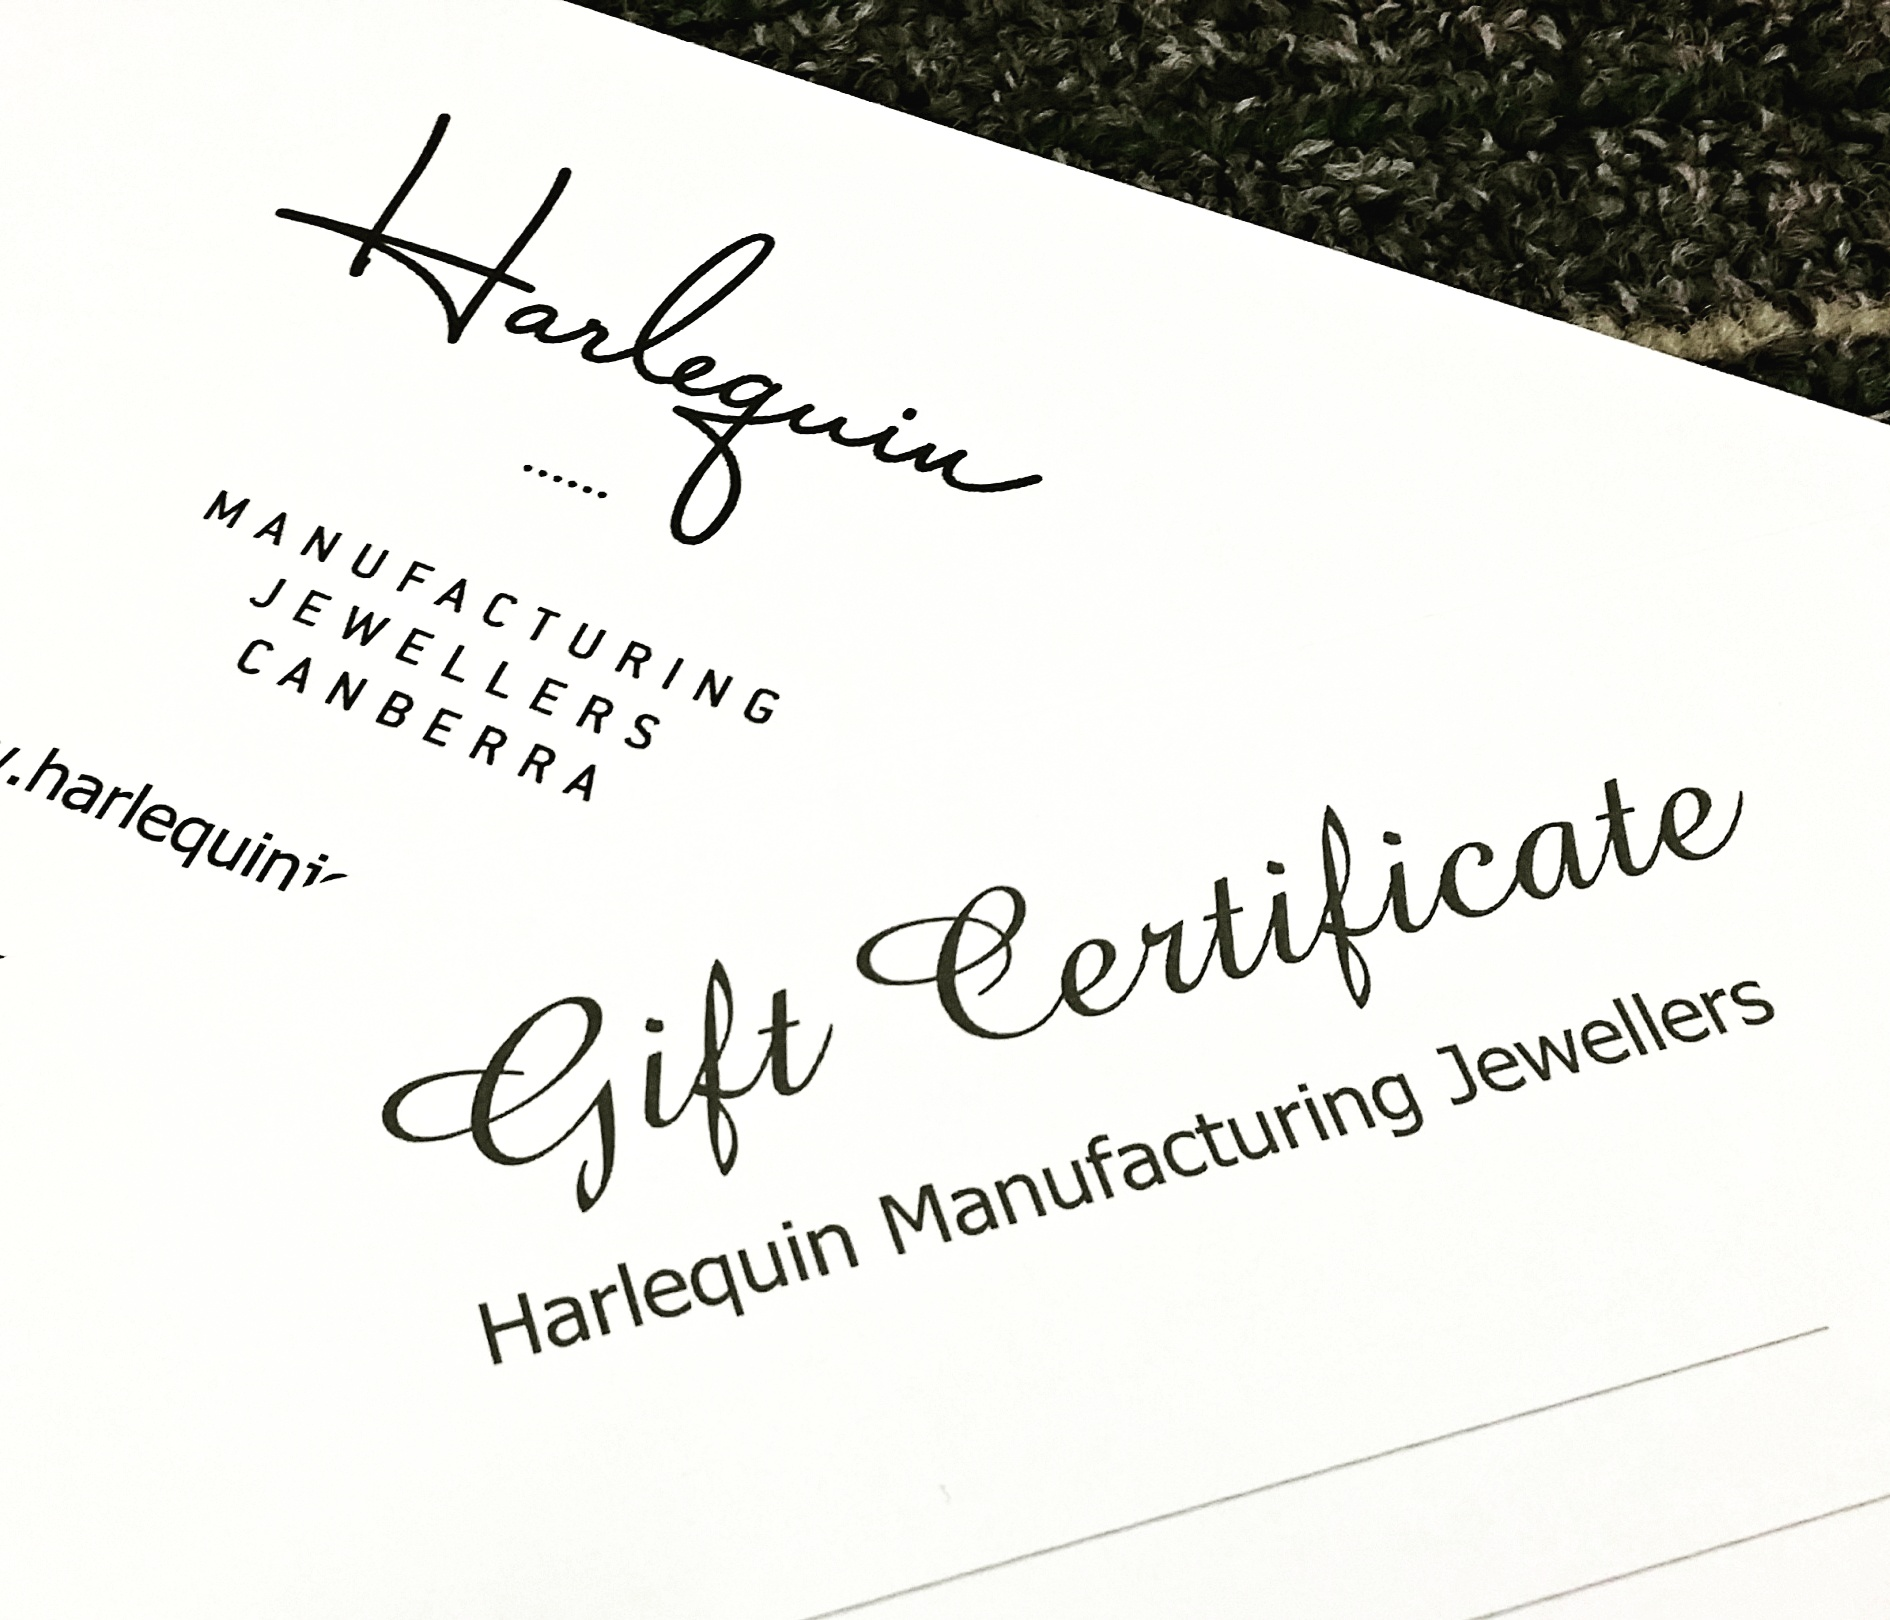 Gift certificate Harlequin Jewellers Canberra